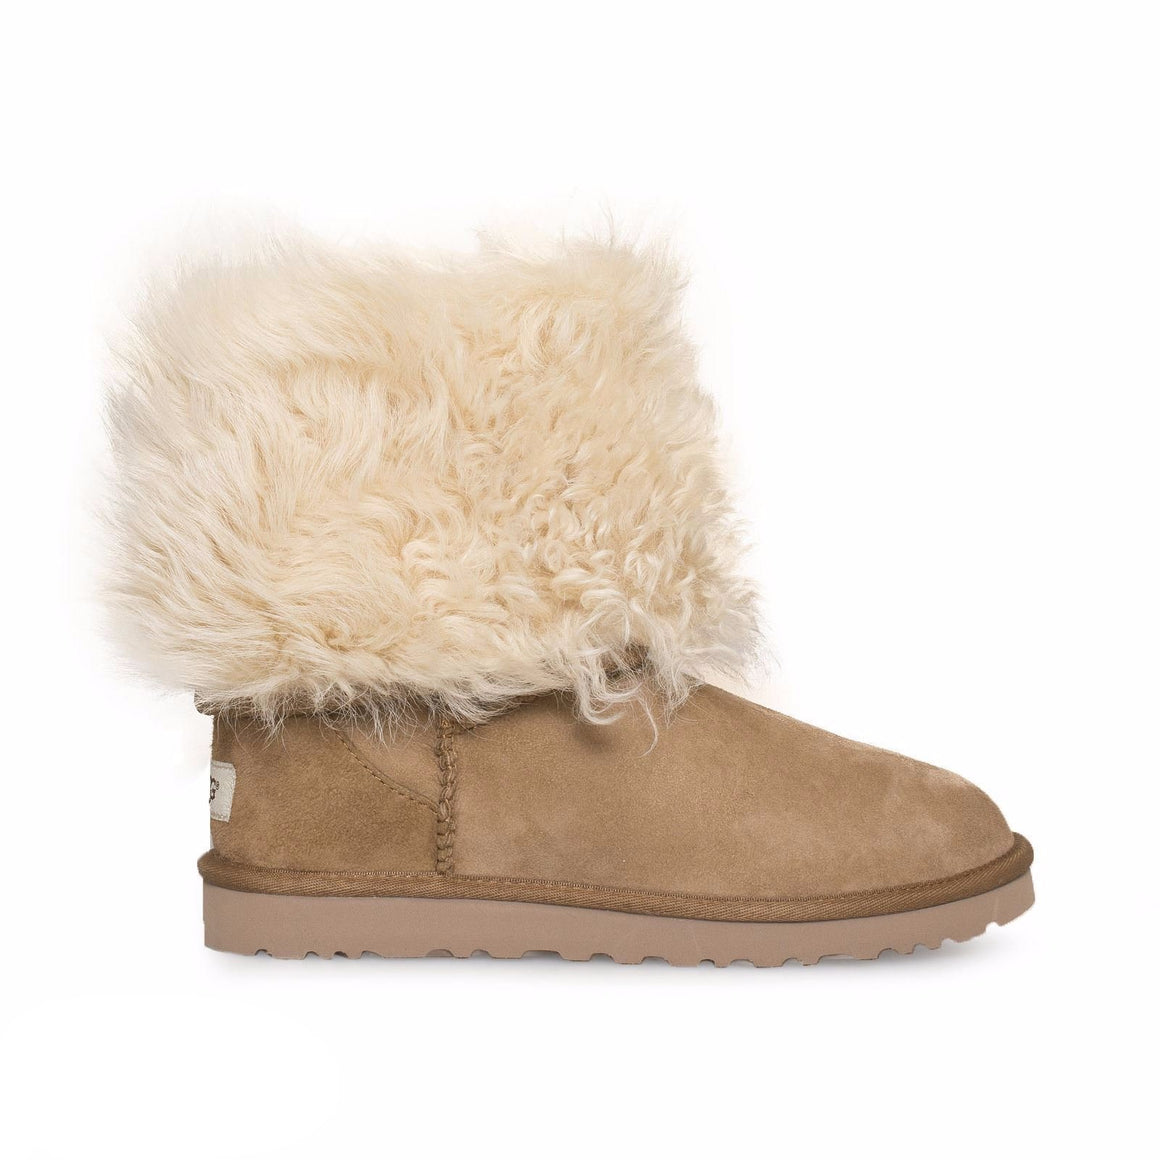 UGG Alexi Chestnut Boots